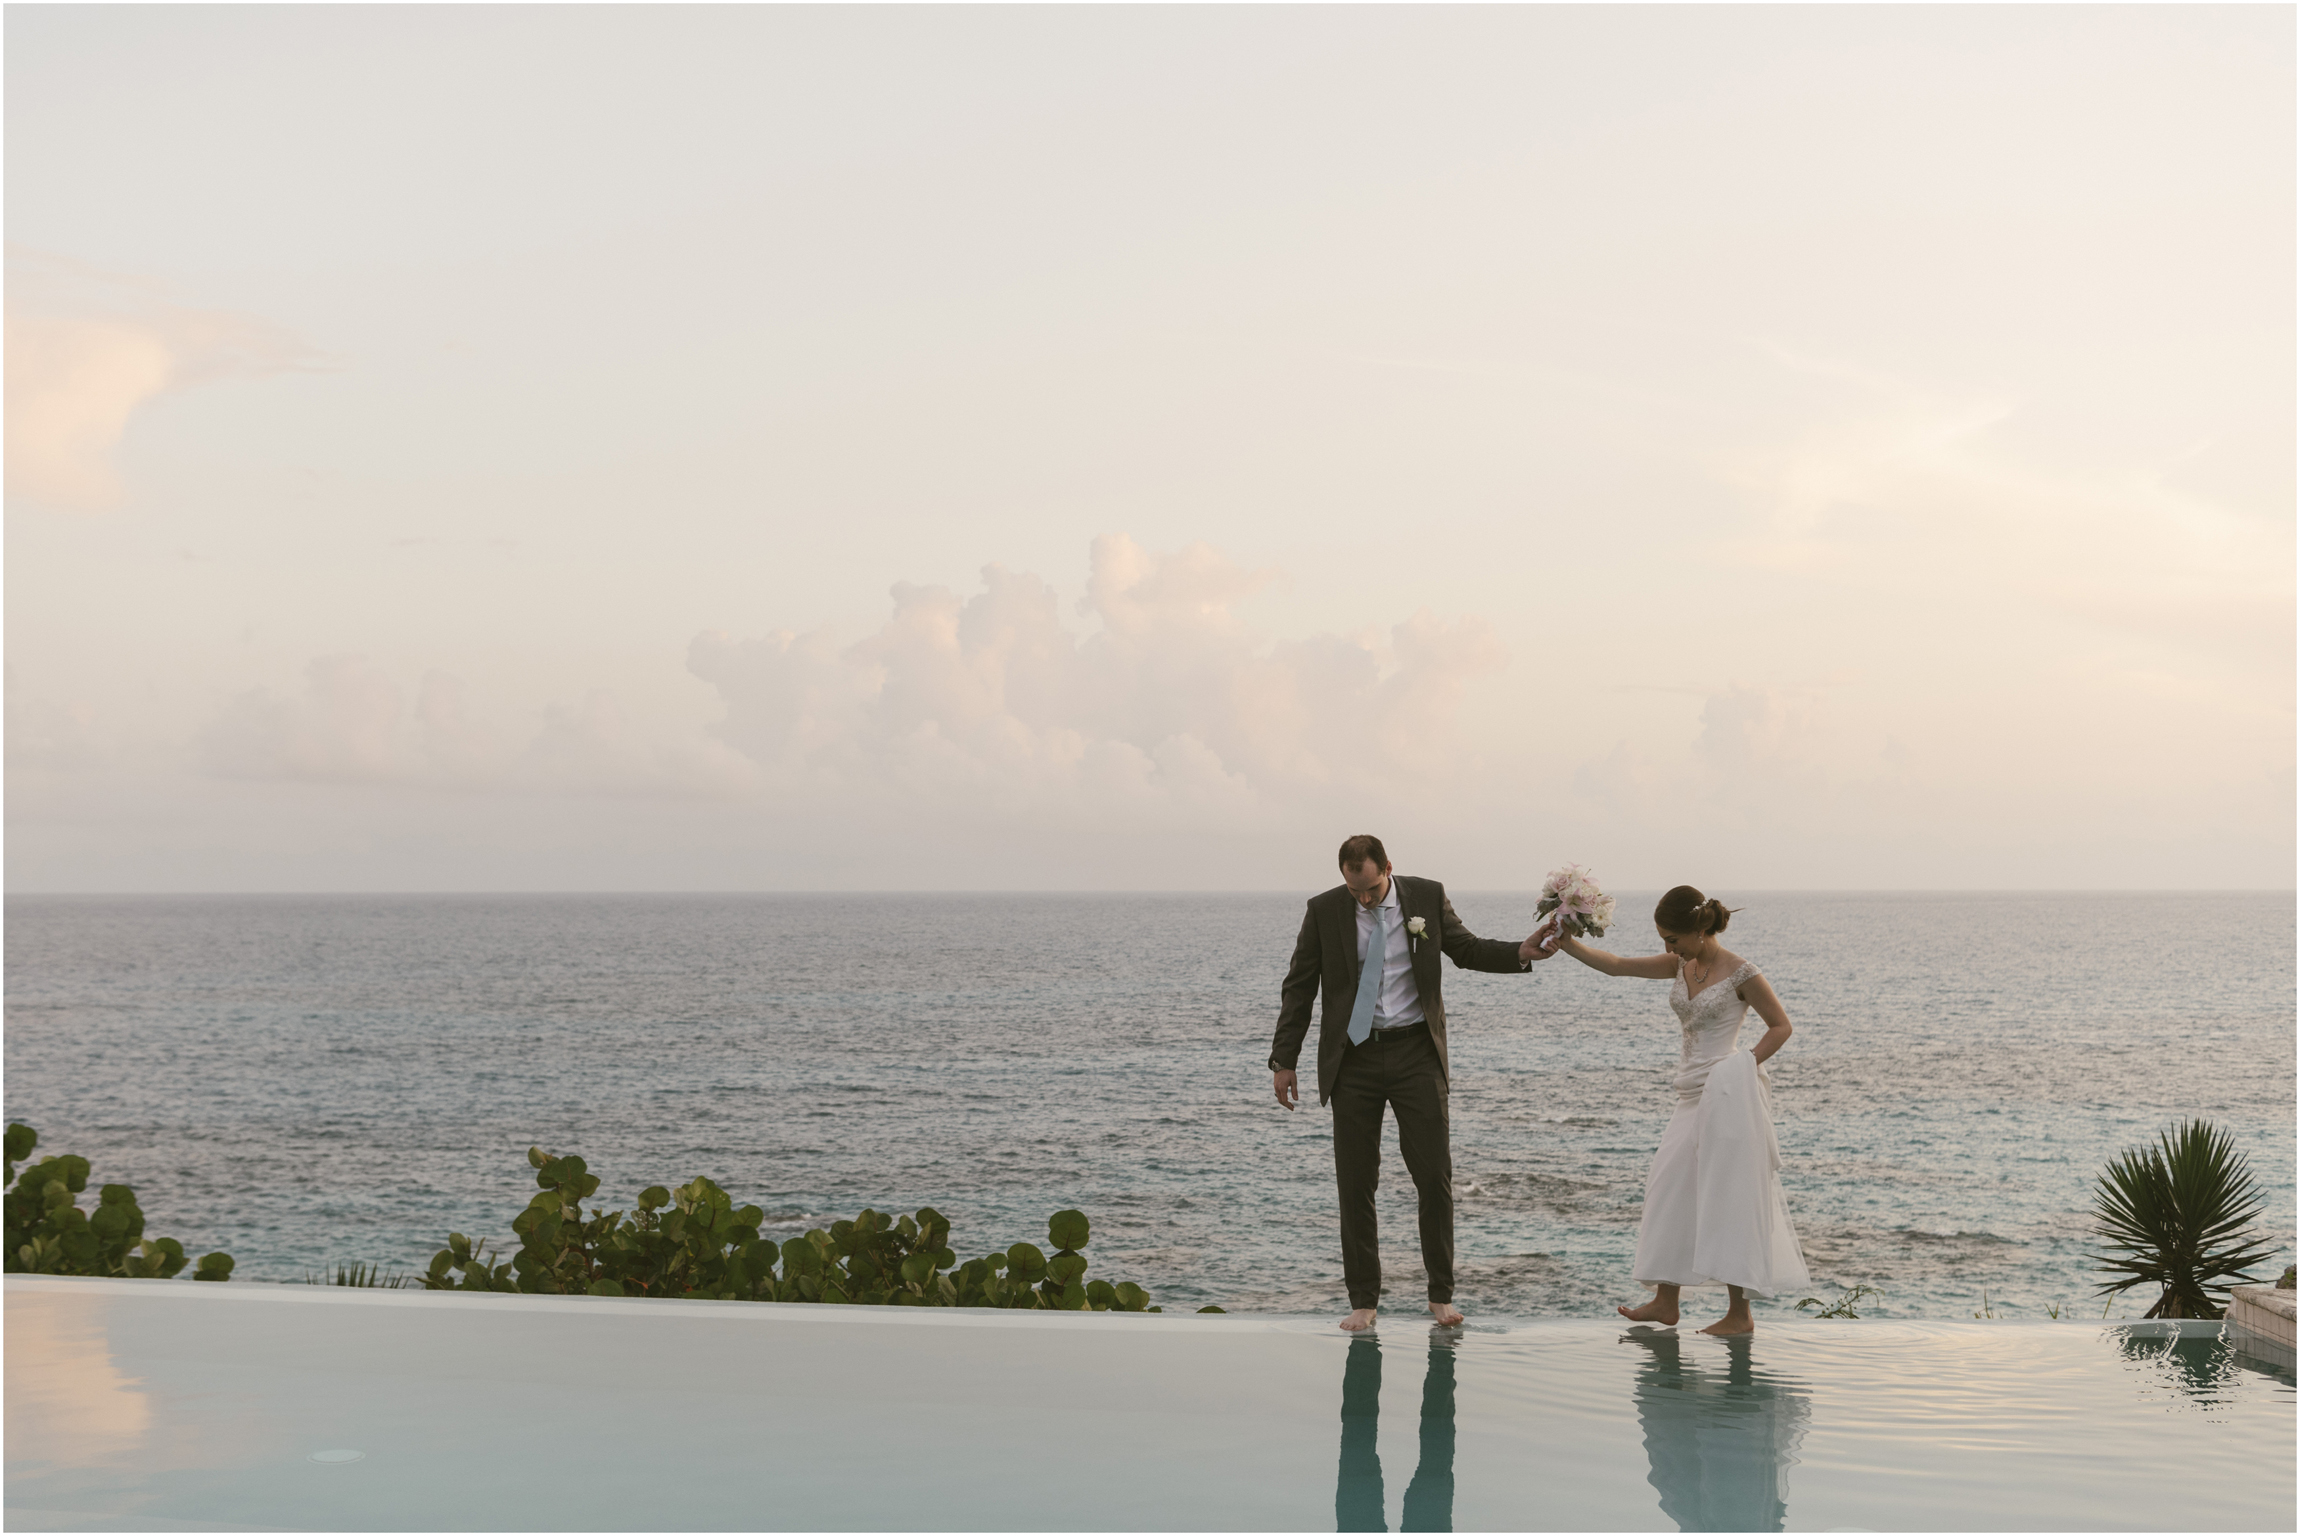 ©FianderFoto_Caribbean_Wedding_Photographer_The Reefs_Bermuda_Lauren_Erik_085.jpg